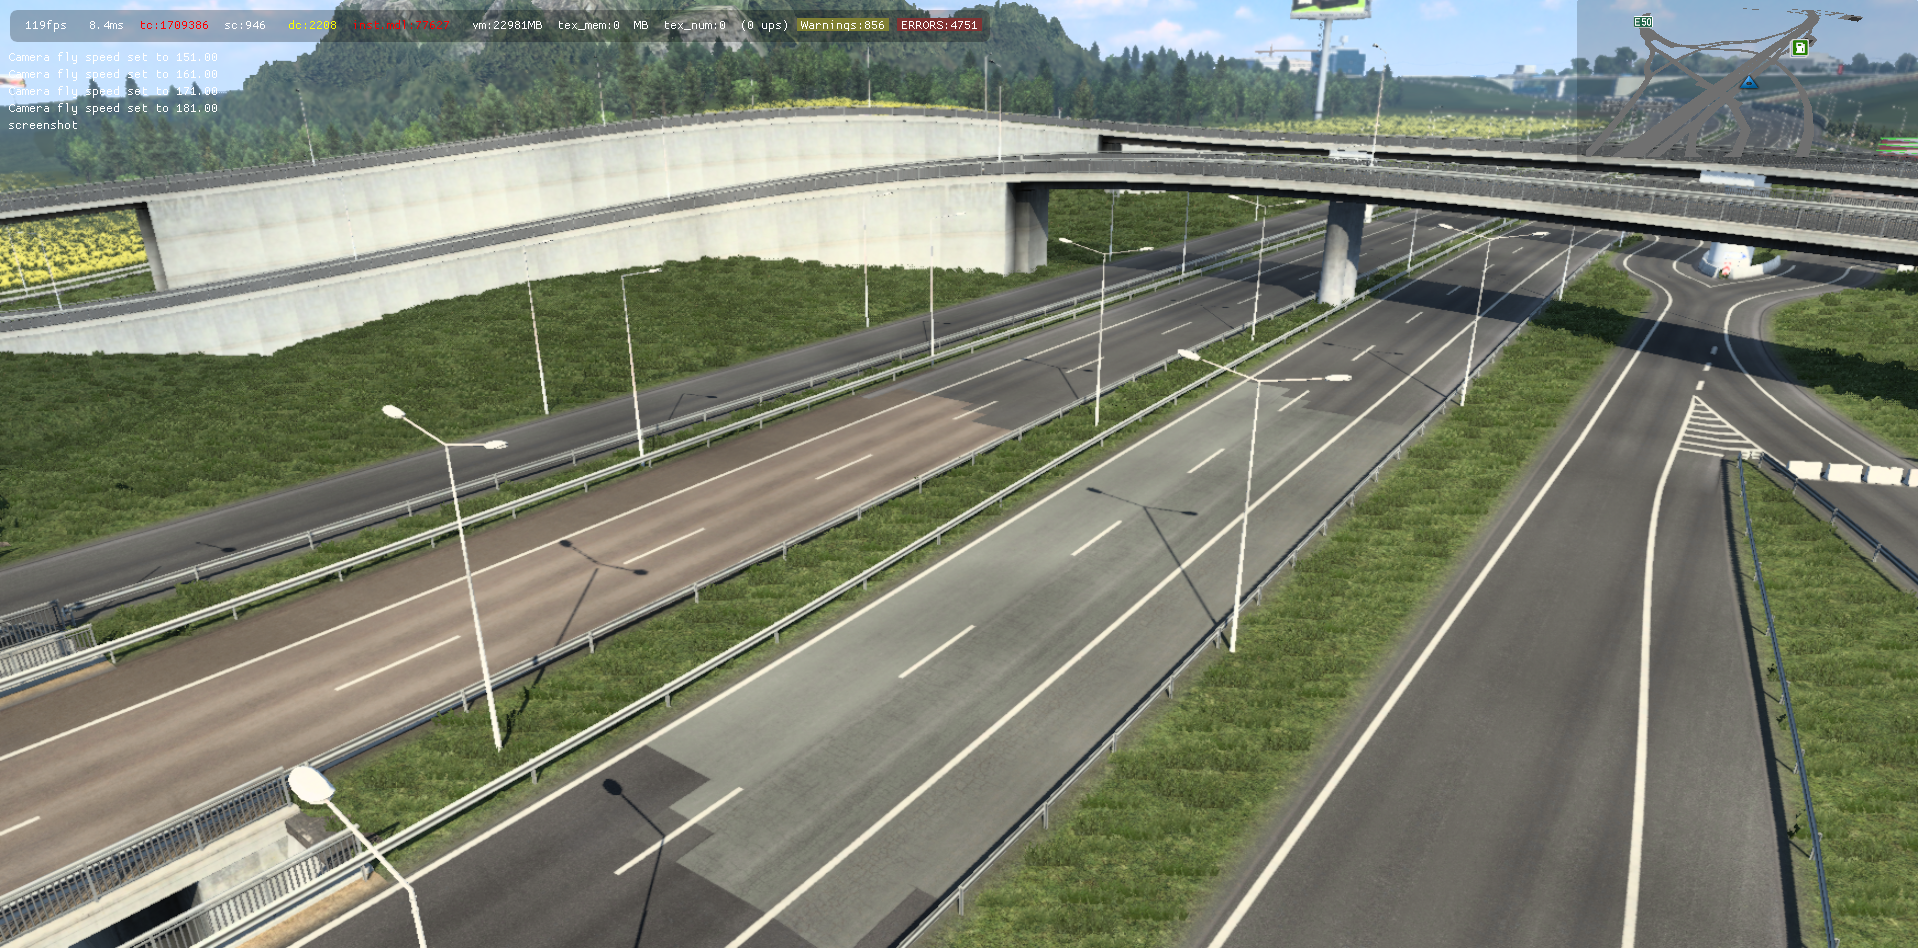 ets2_20210622_214715_00.png